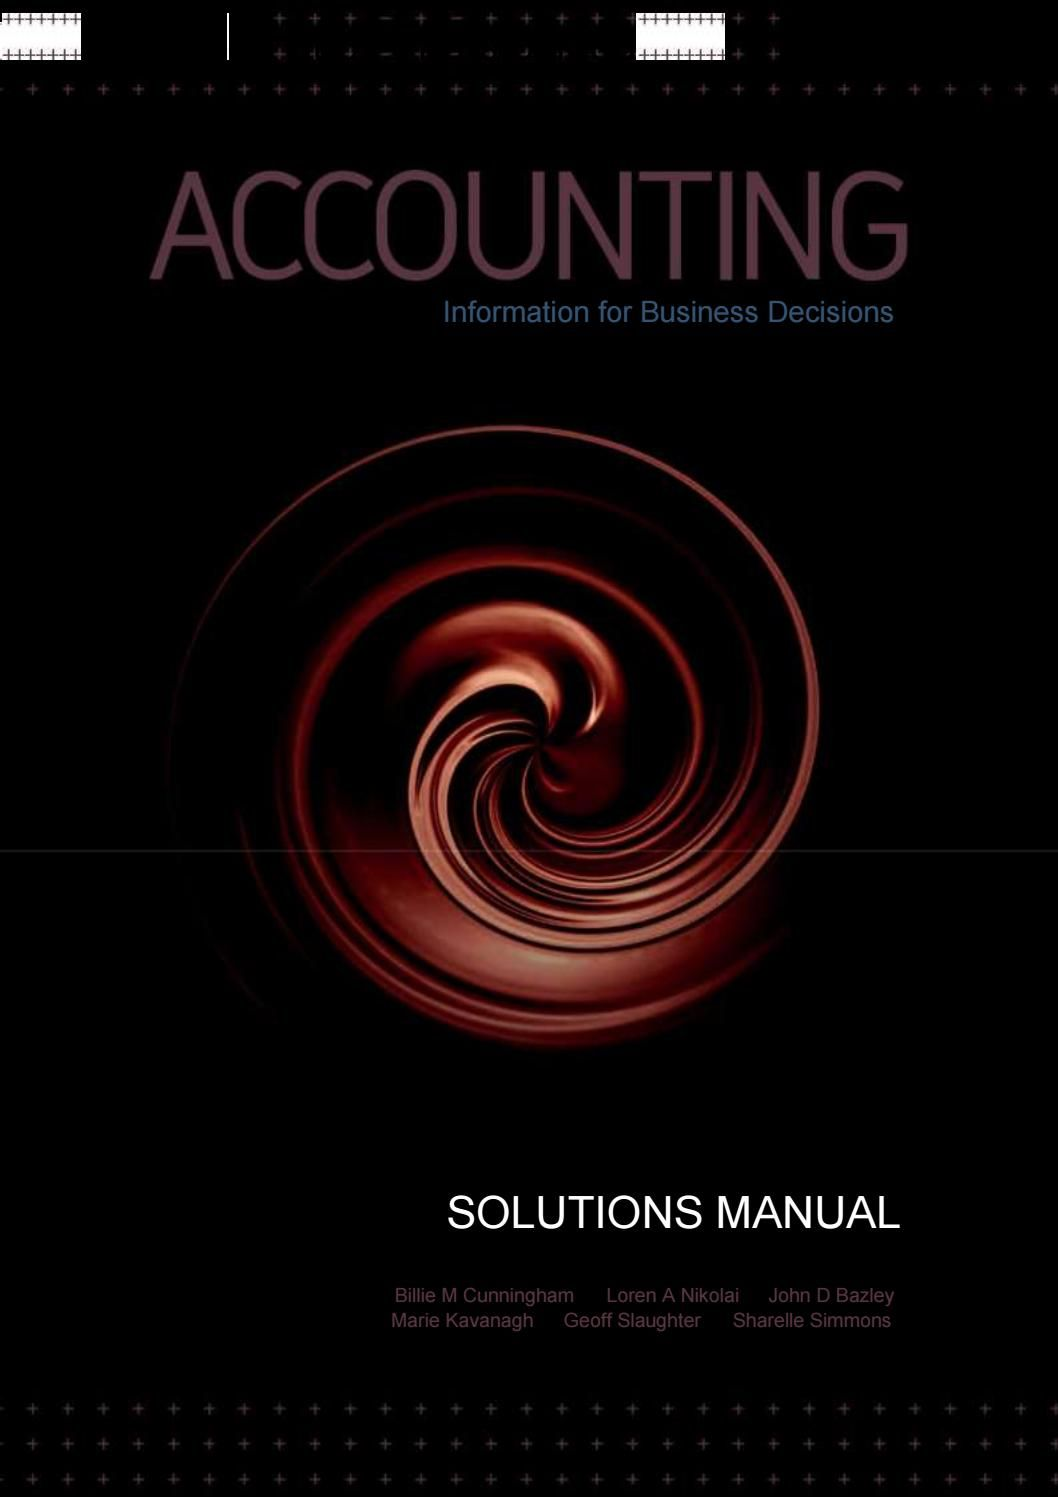 Solutions Manual For Accounting Information Business Decisions 1st Edition By Cunningham Nikolai